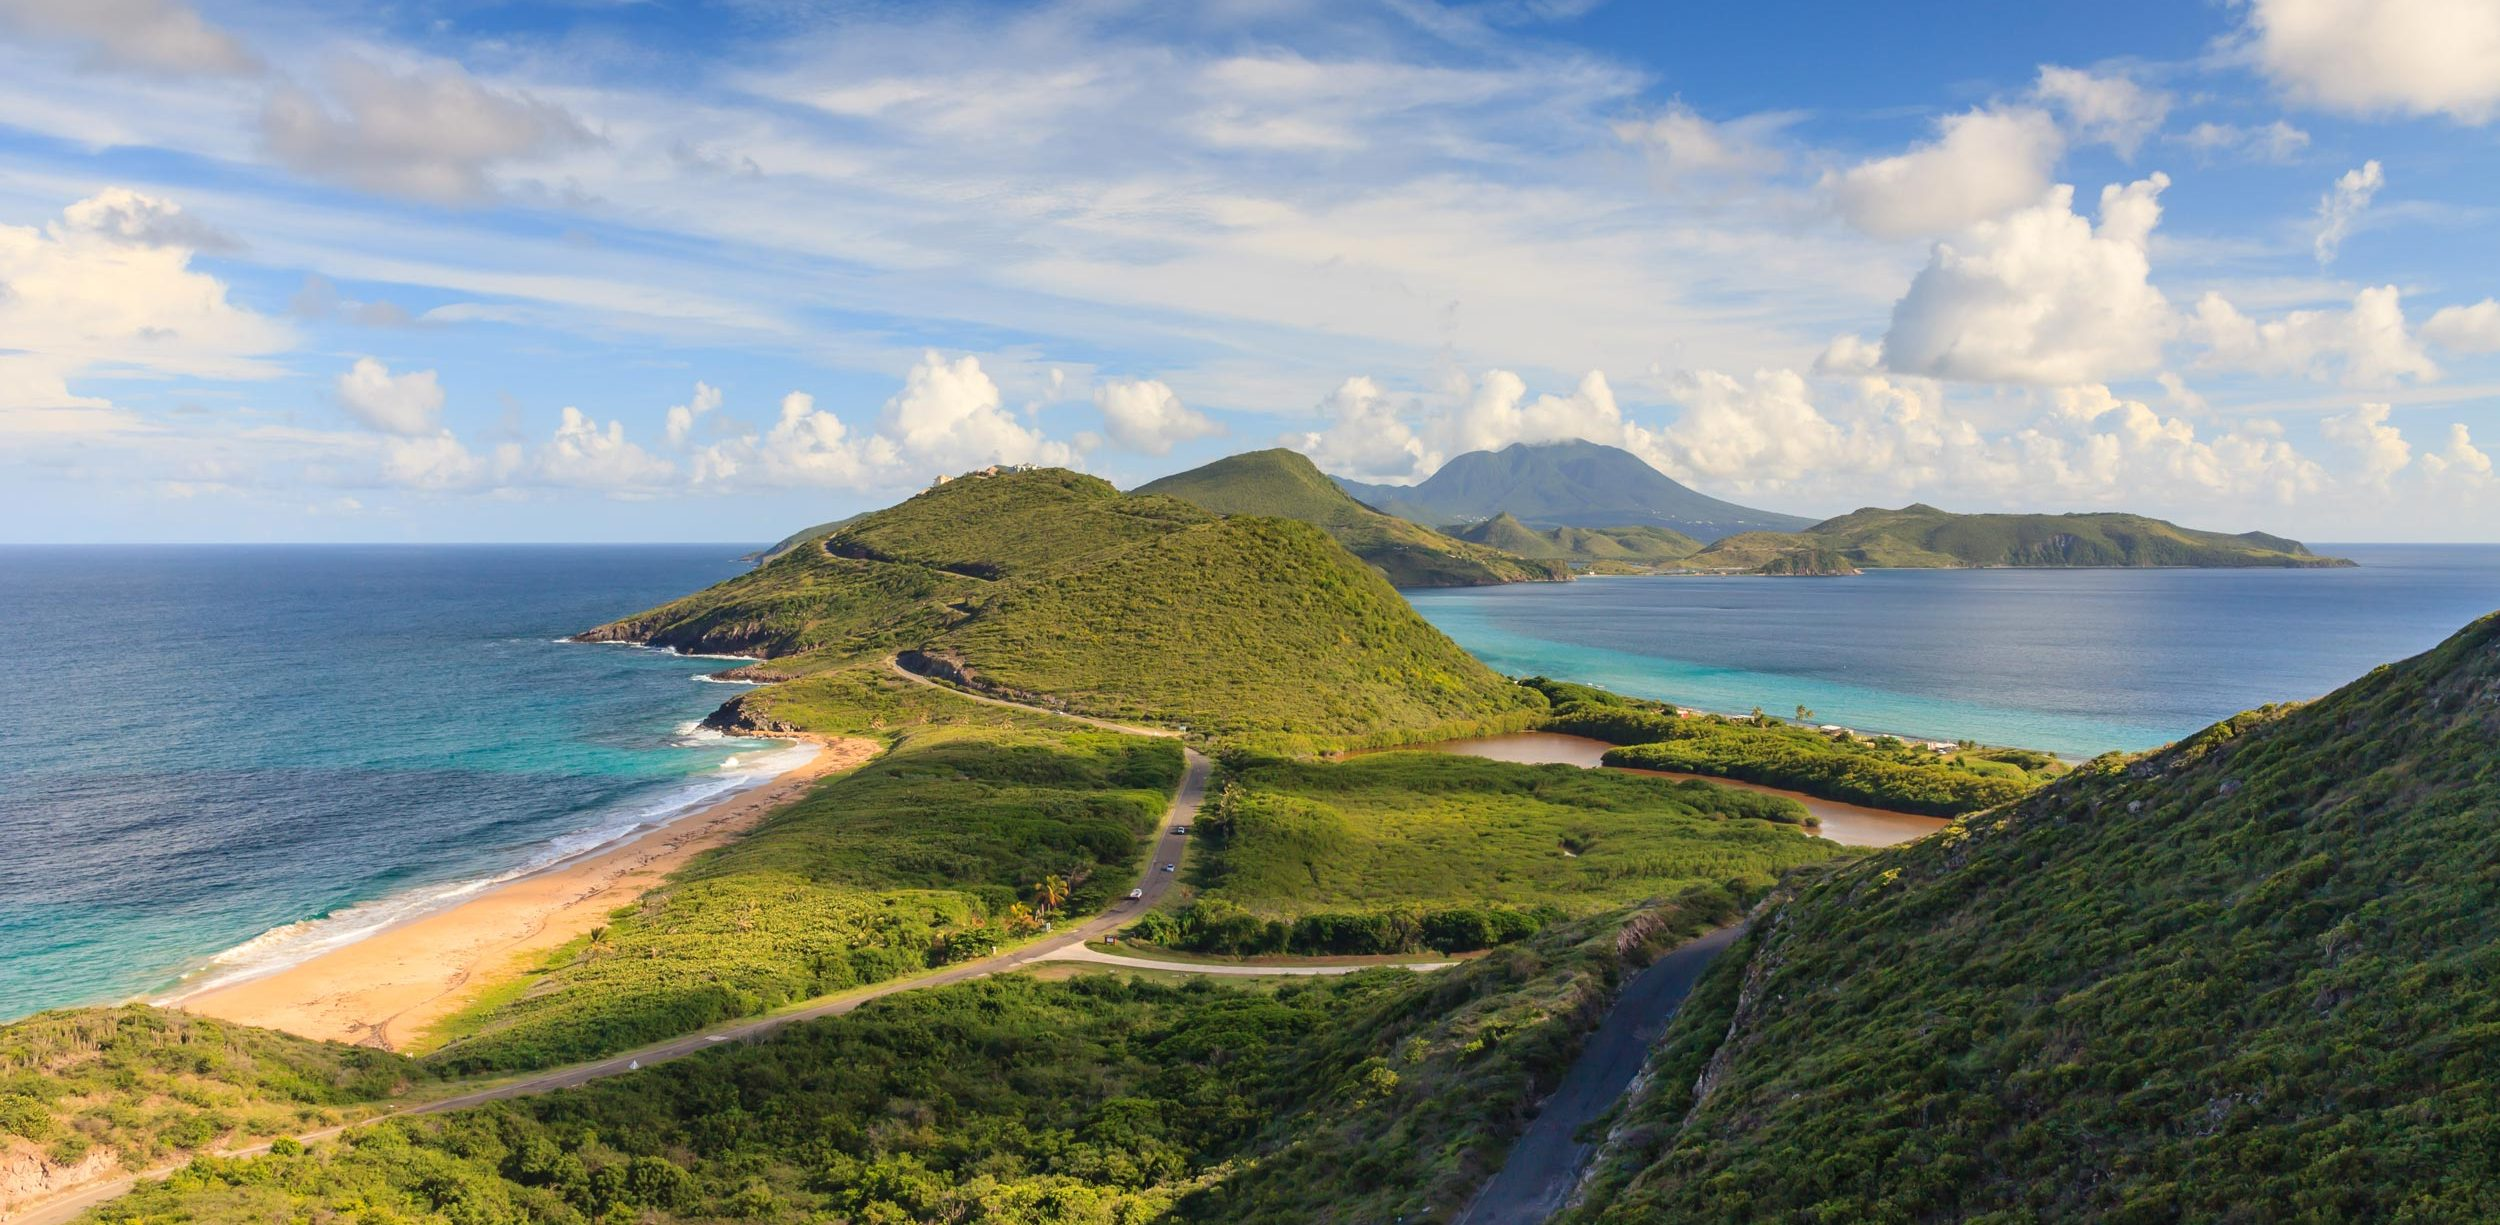 St. Kitts' view. A luxury destination YU Lounge